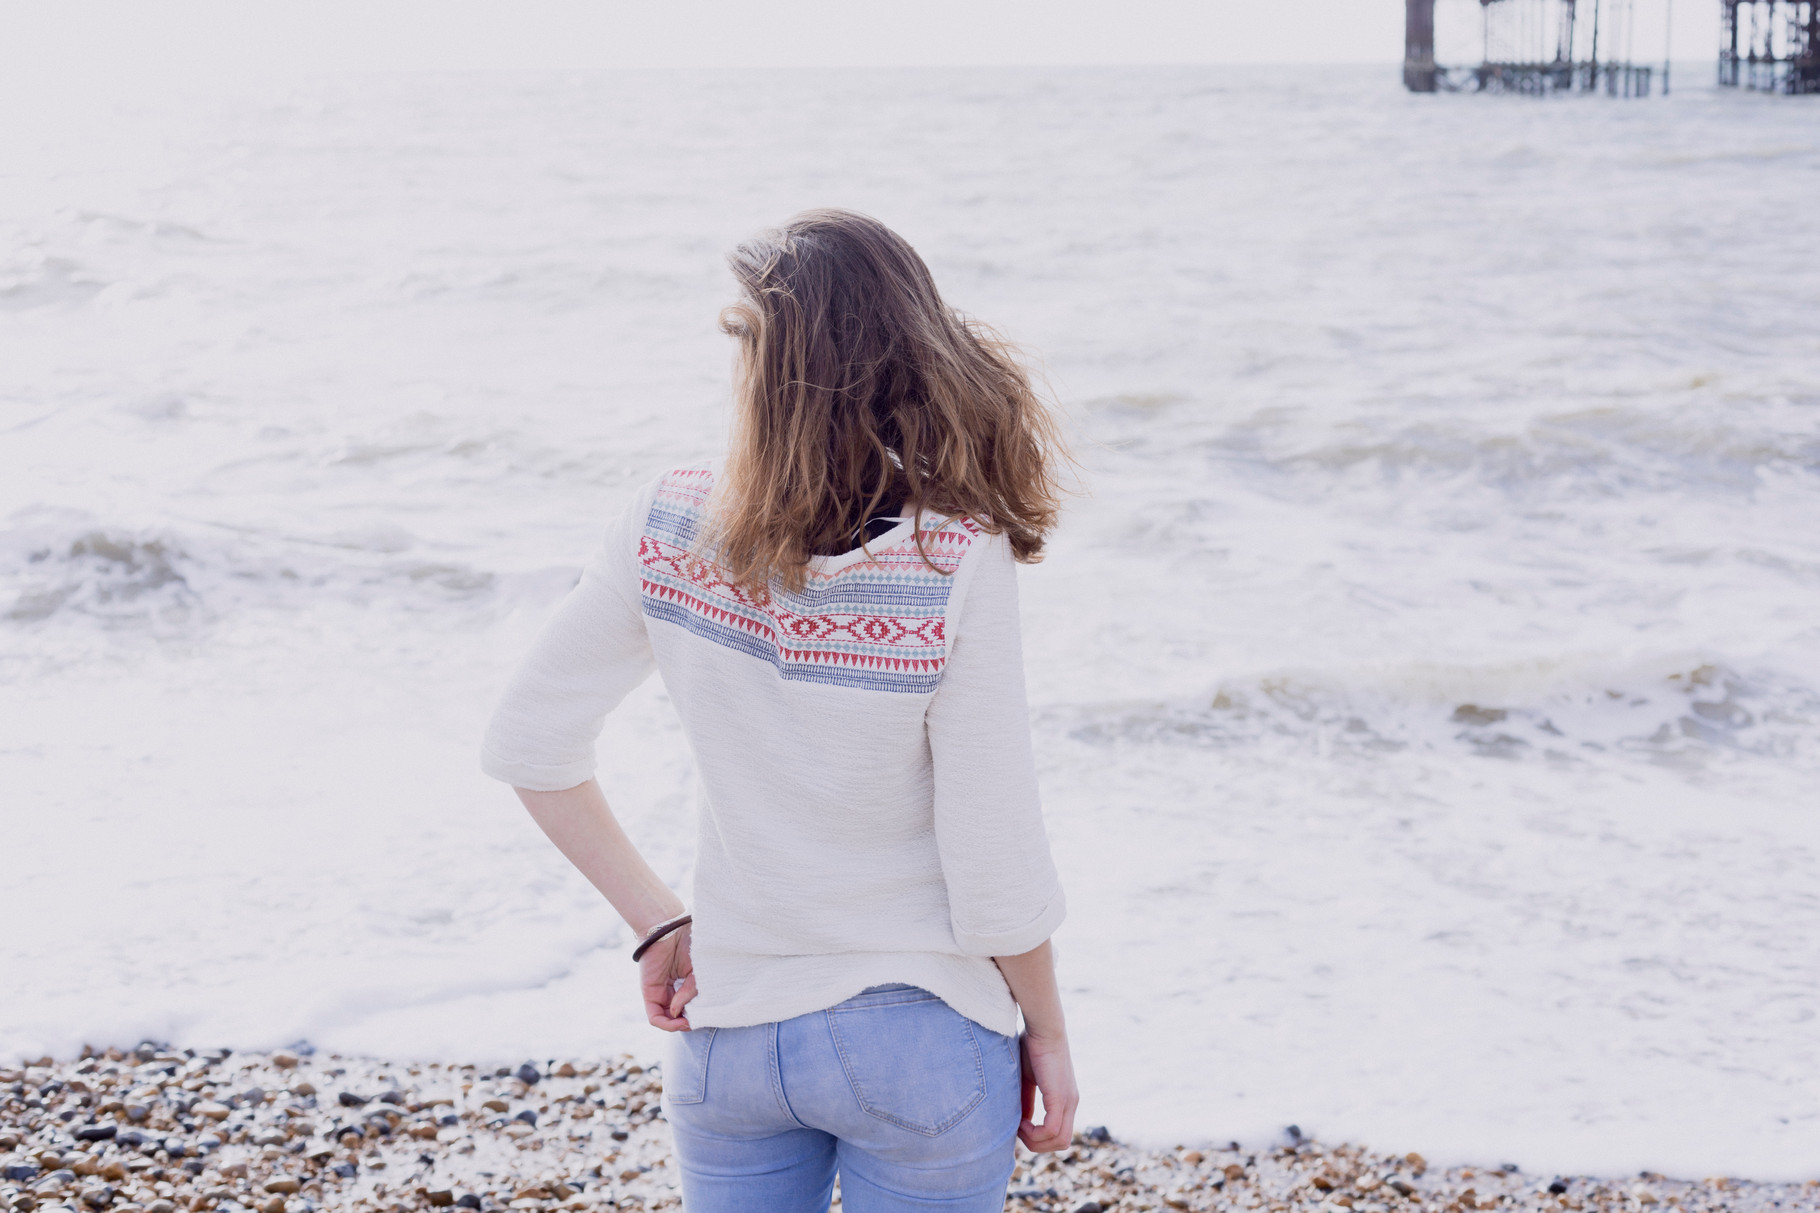 Does your wardrobe need a breath of fresh air with CMB-Solent?